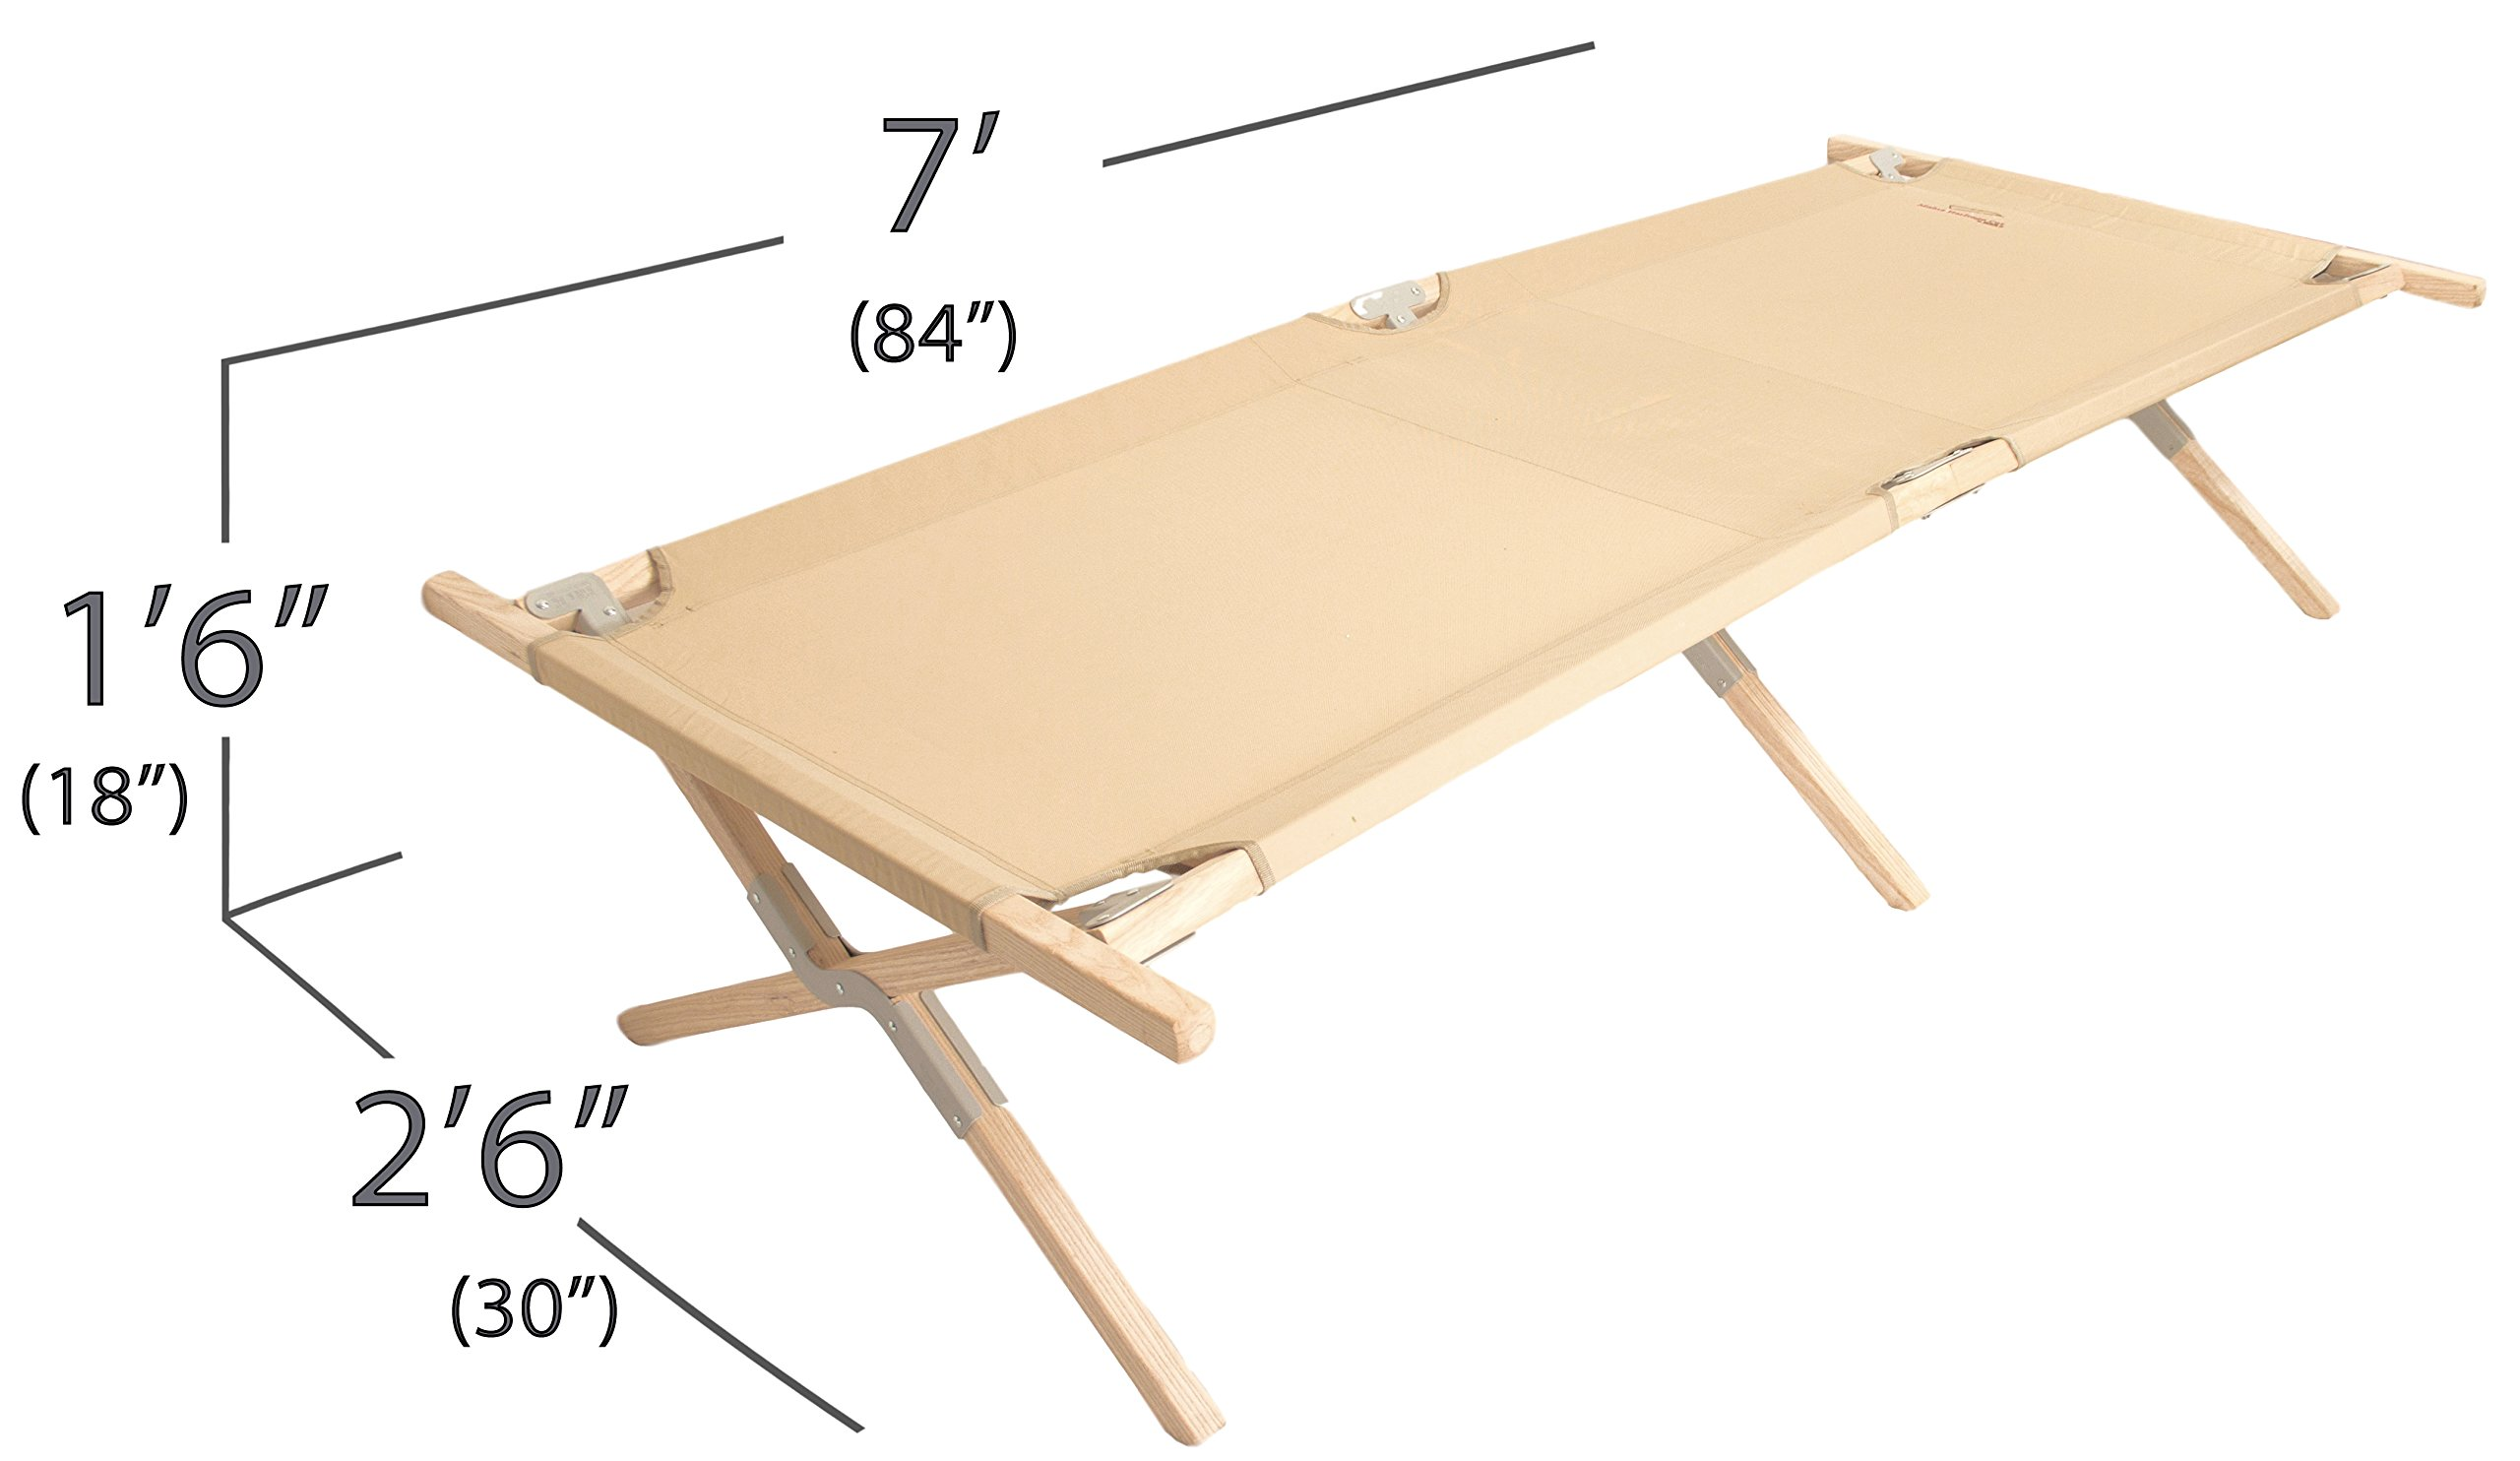 Maine Heritage Cot, folding cot by Byer of Maine by Byer of Maine (Image #6)